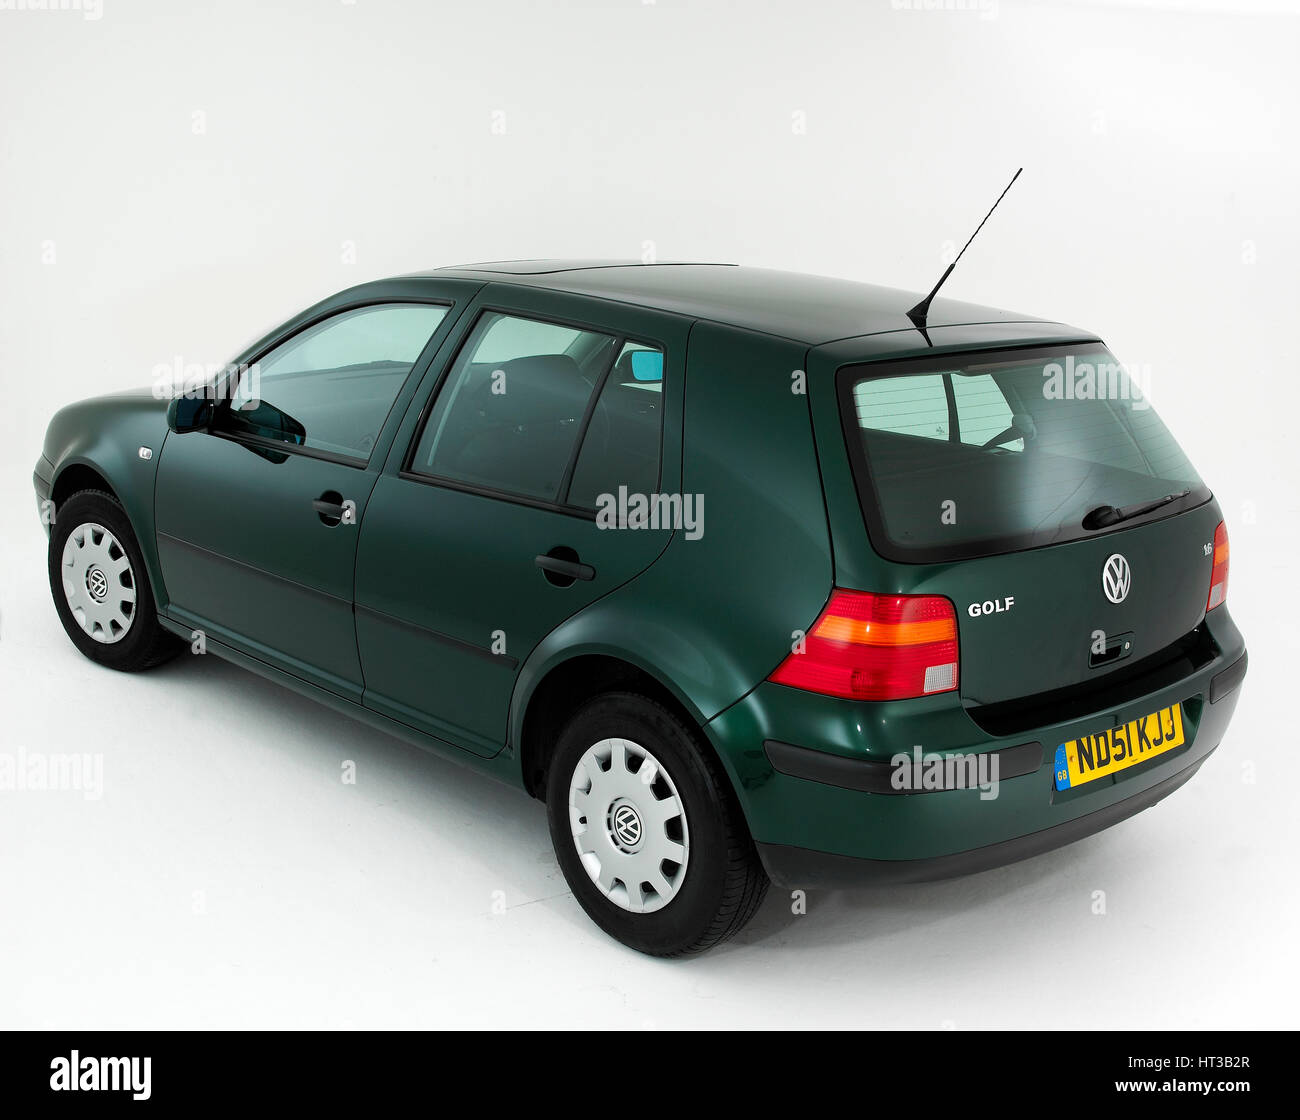 2001 VW Golf 1.6. Artist: Unknown. - Stock Image